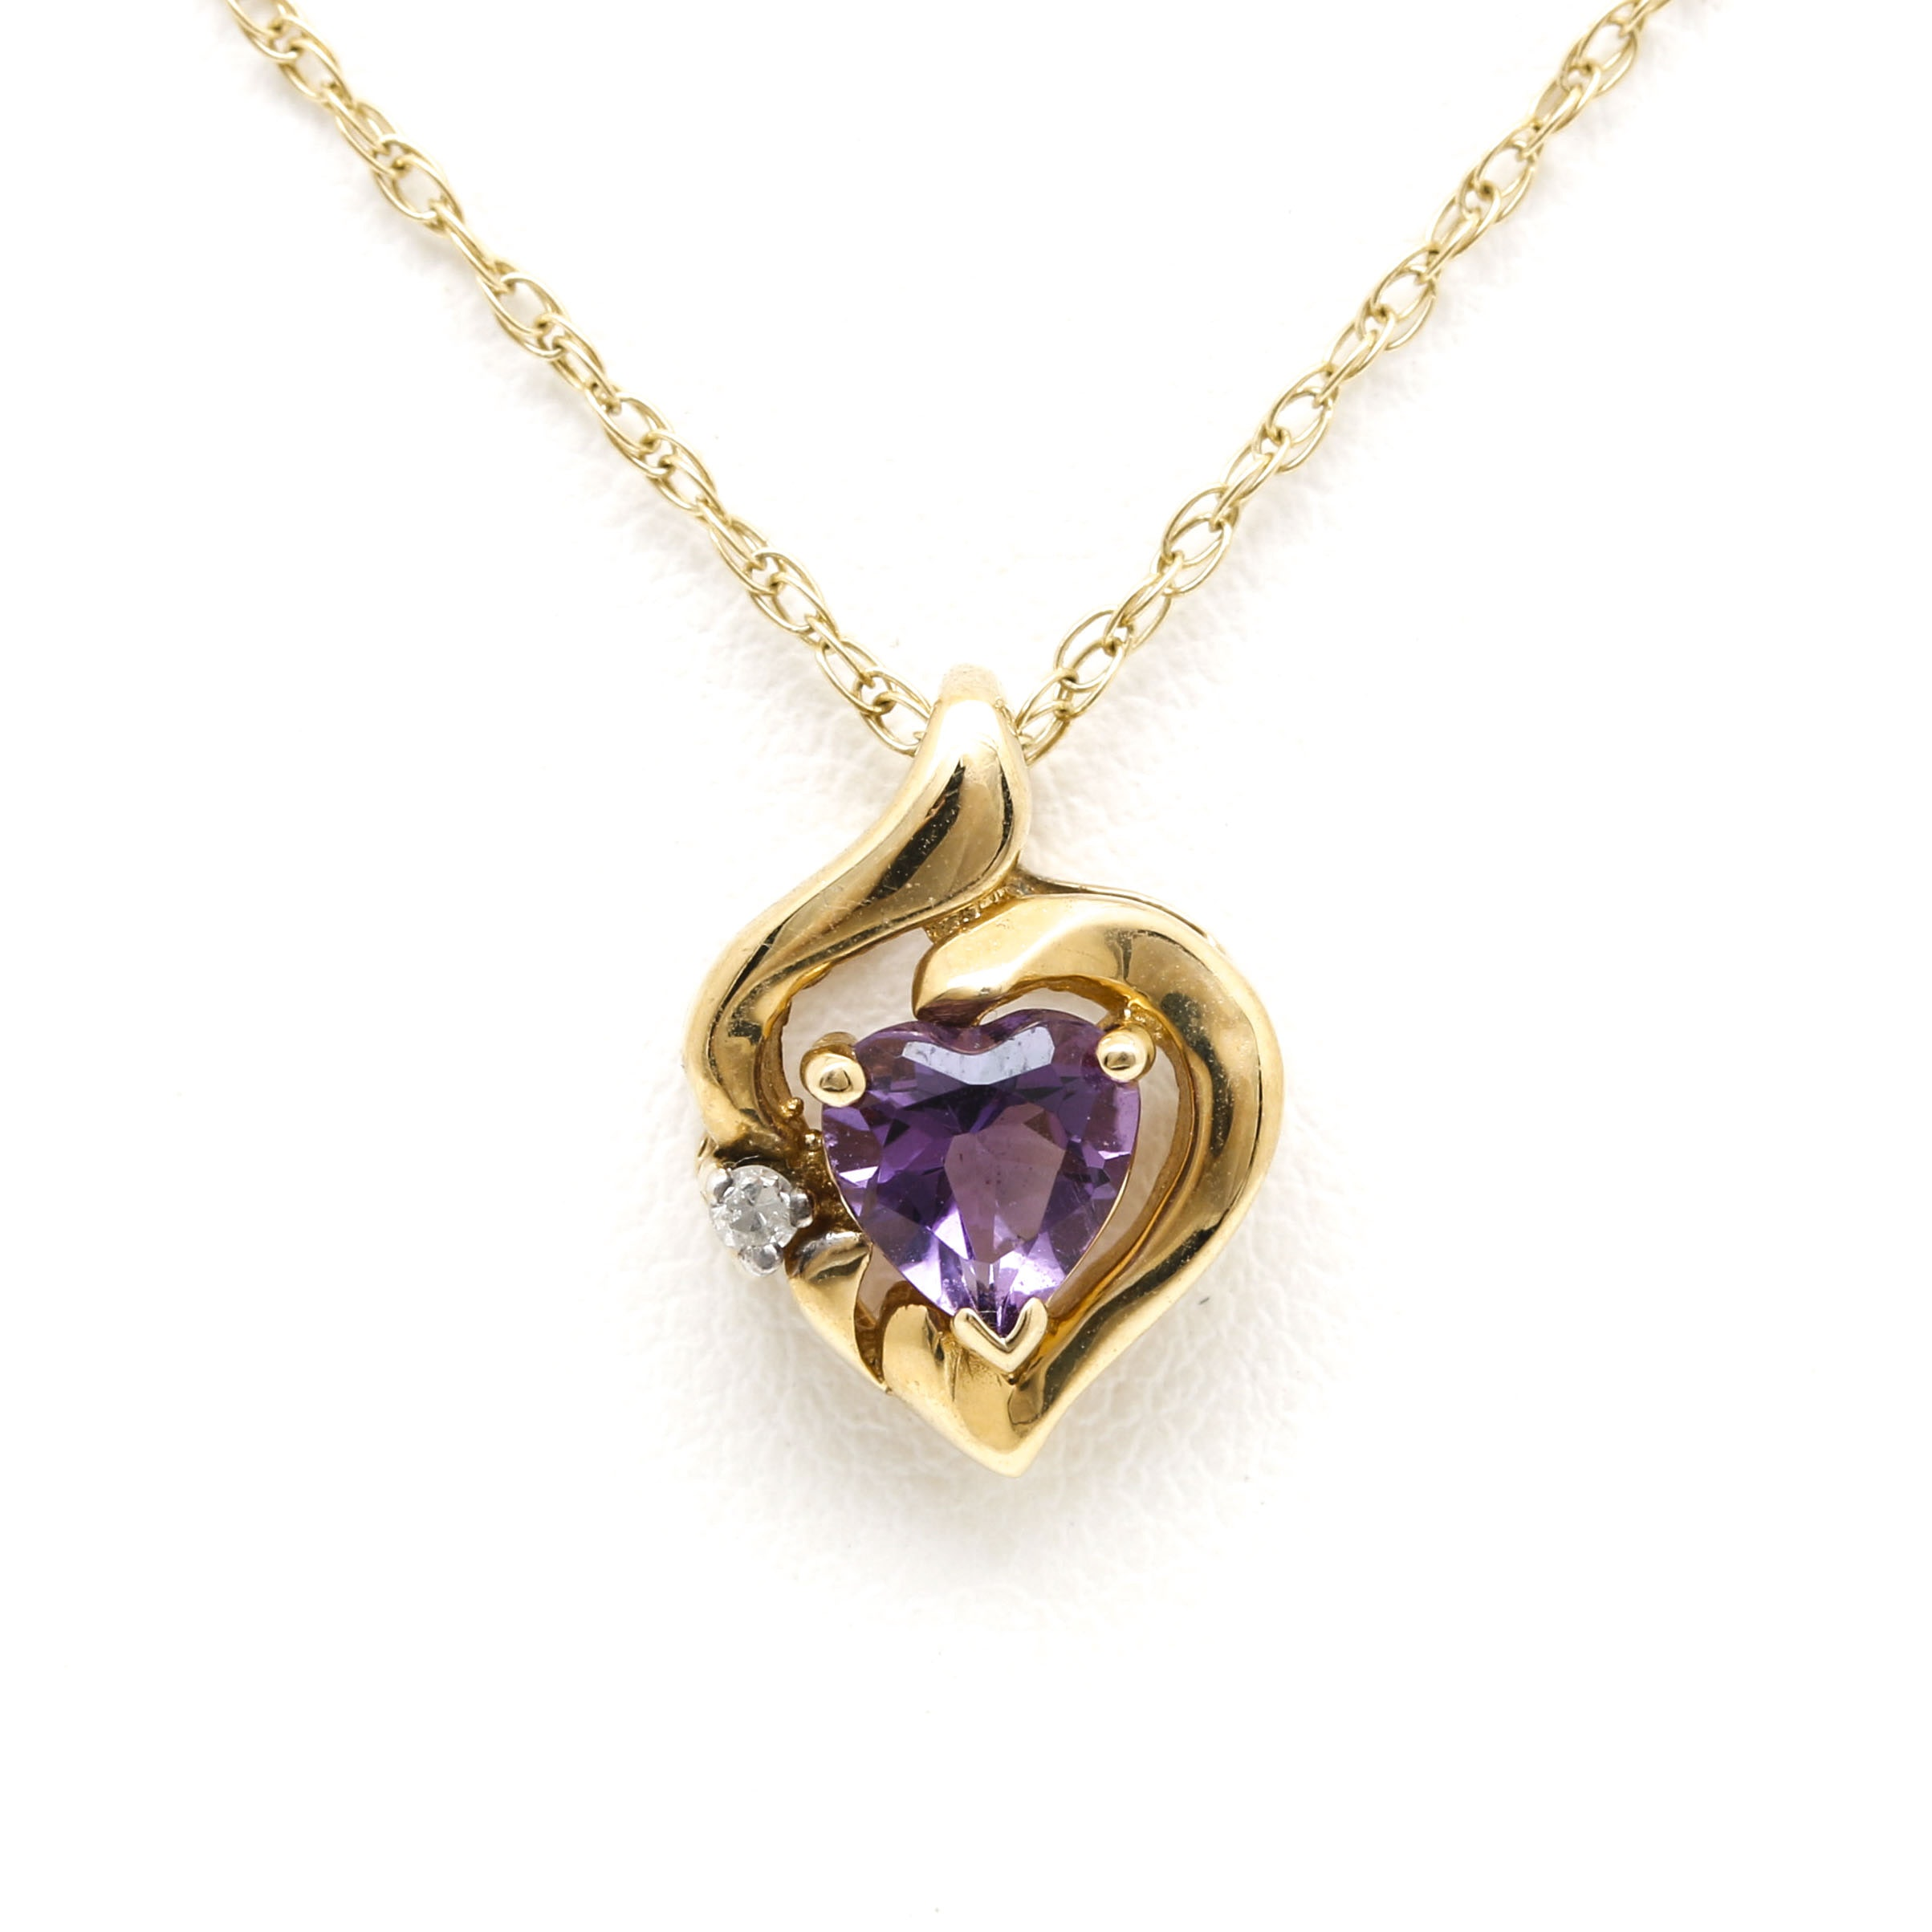 14K Yellow Gold Amethyst and Diamond Heart Pendant Necklace